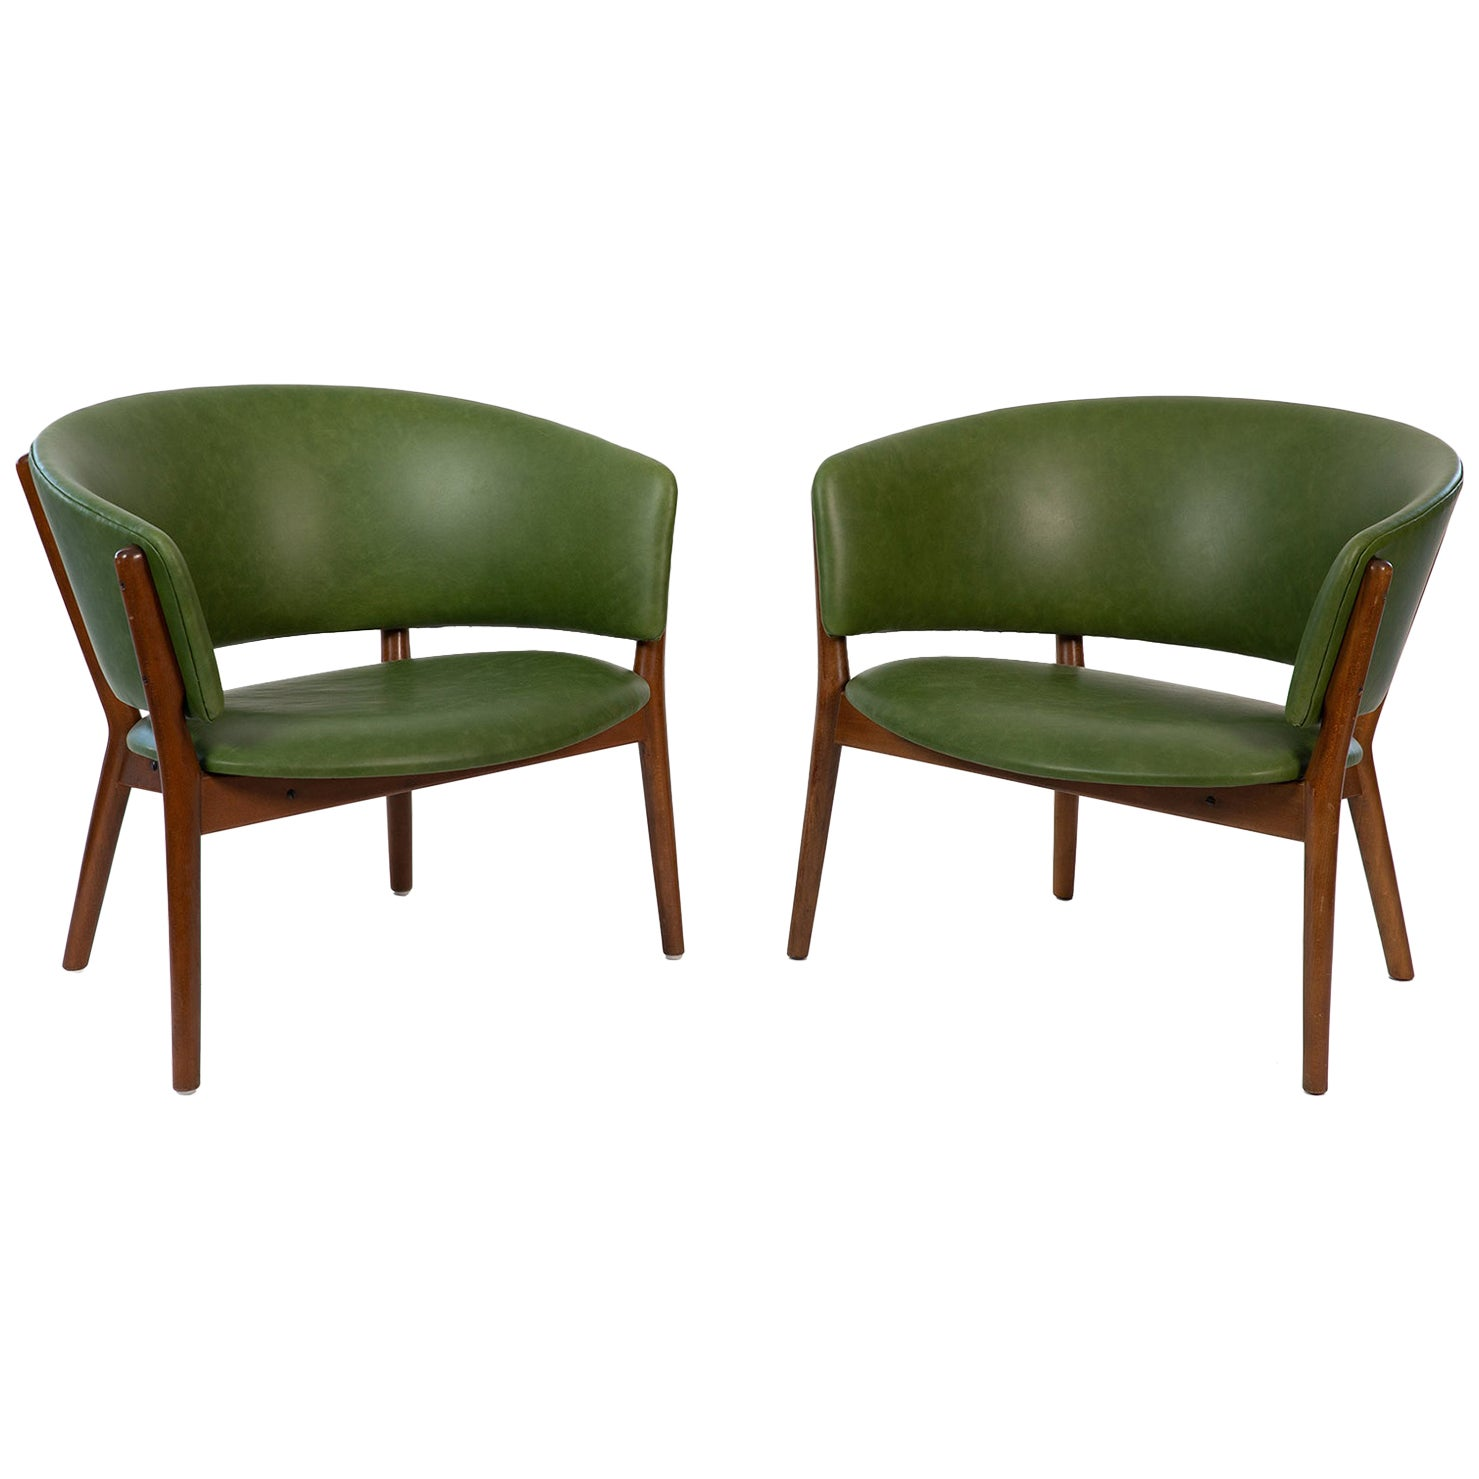 Nanna Ditzel ND83 Leather Lounge Chairs